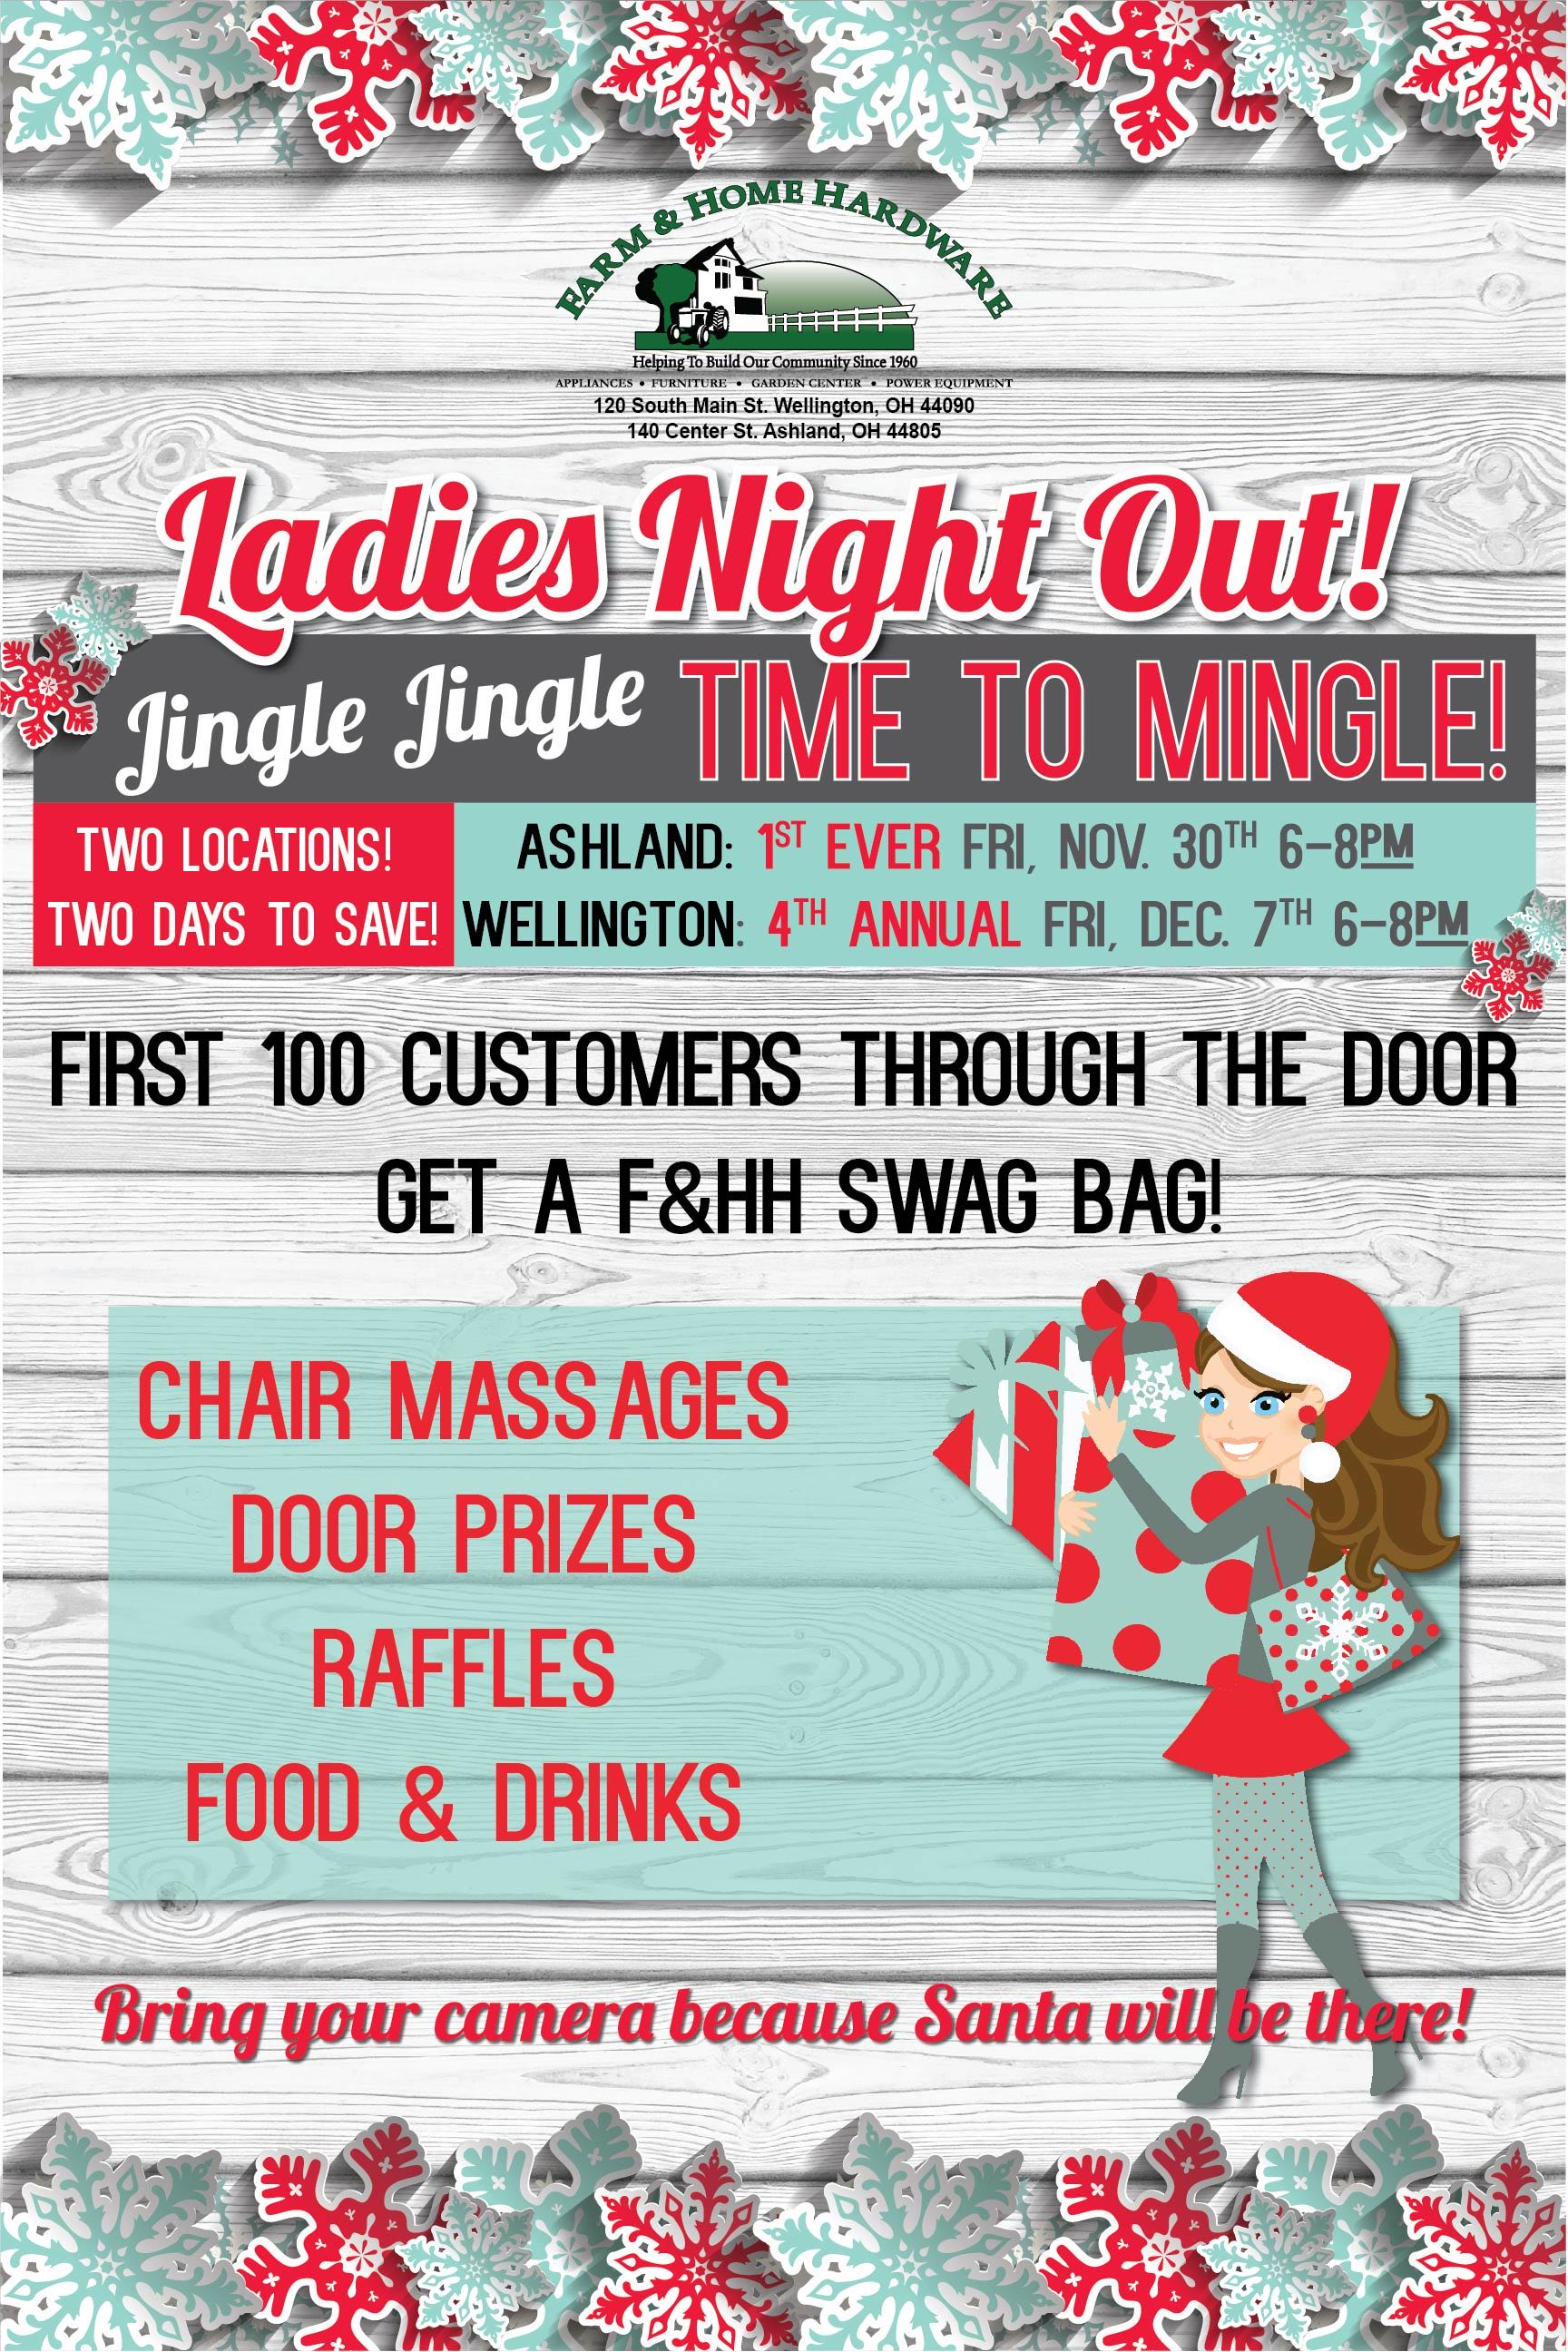 Farm & Home Hardware Ladies Night Out 2018